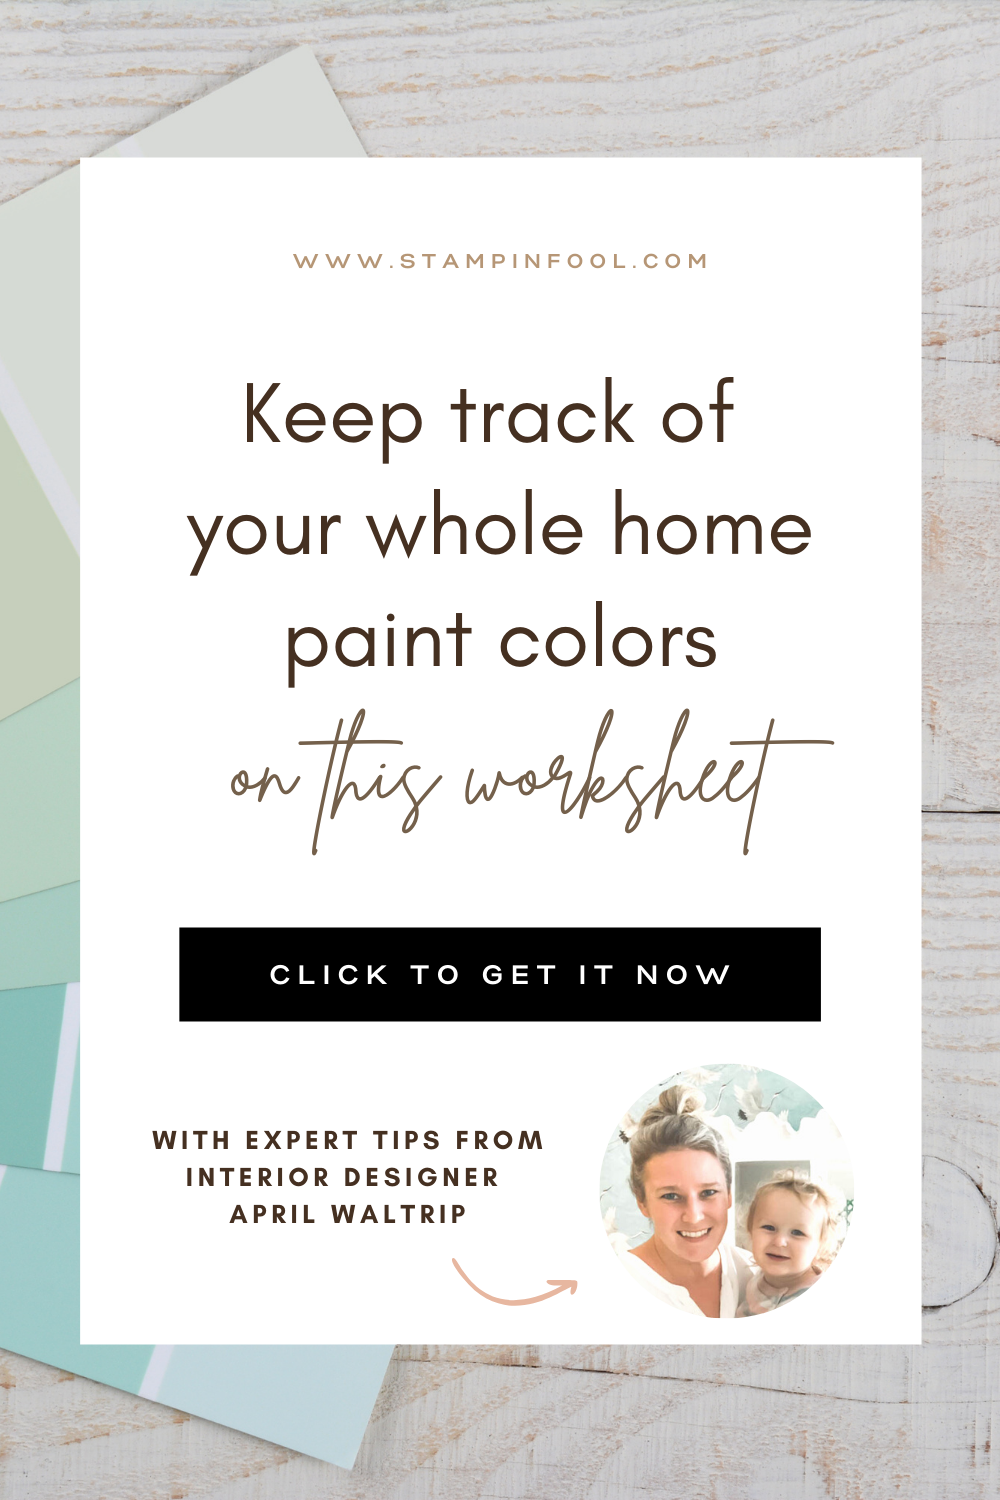 Home Paint Planner & Tracker: Keep track of your home's paint colors with this printable worksheet